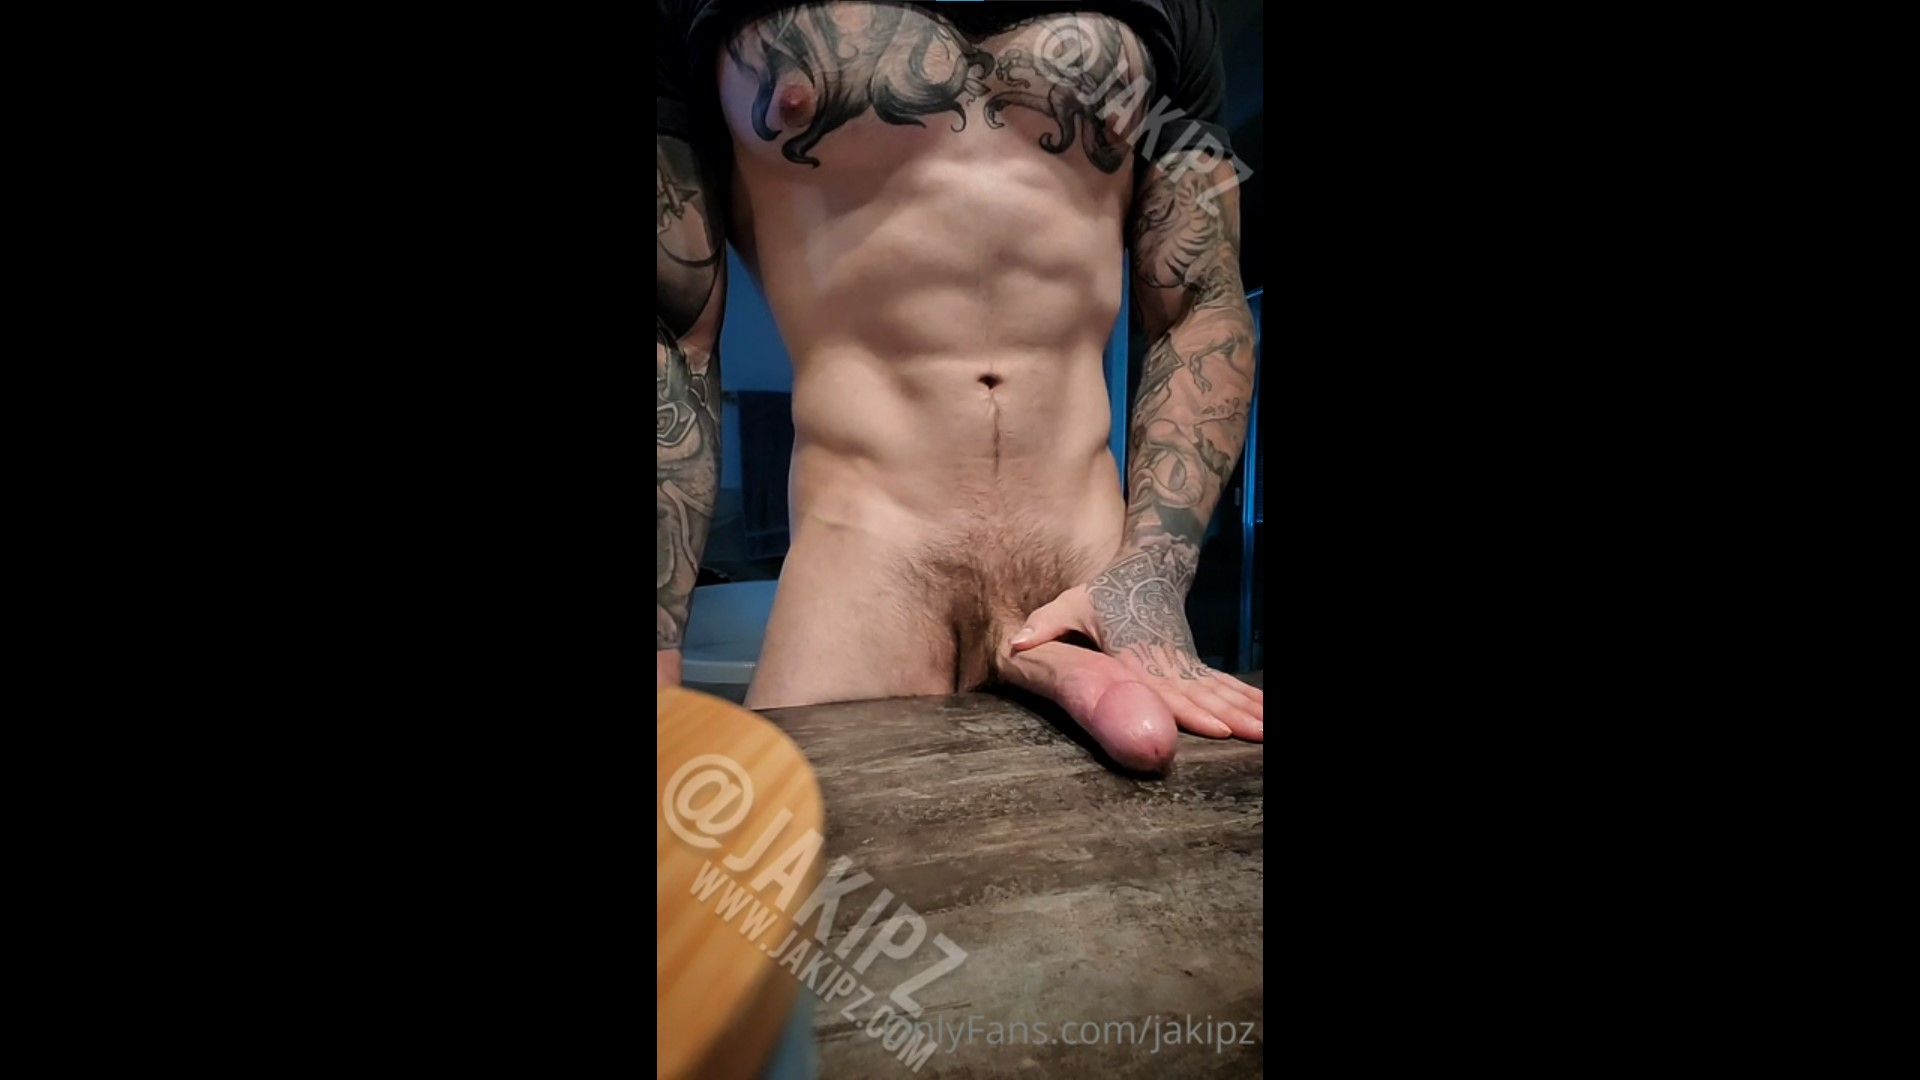 Fucking my hand and shooting a big load over the table - Jakipz